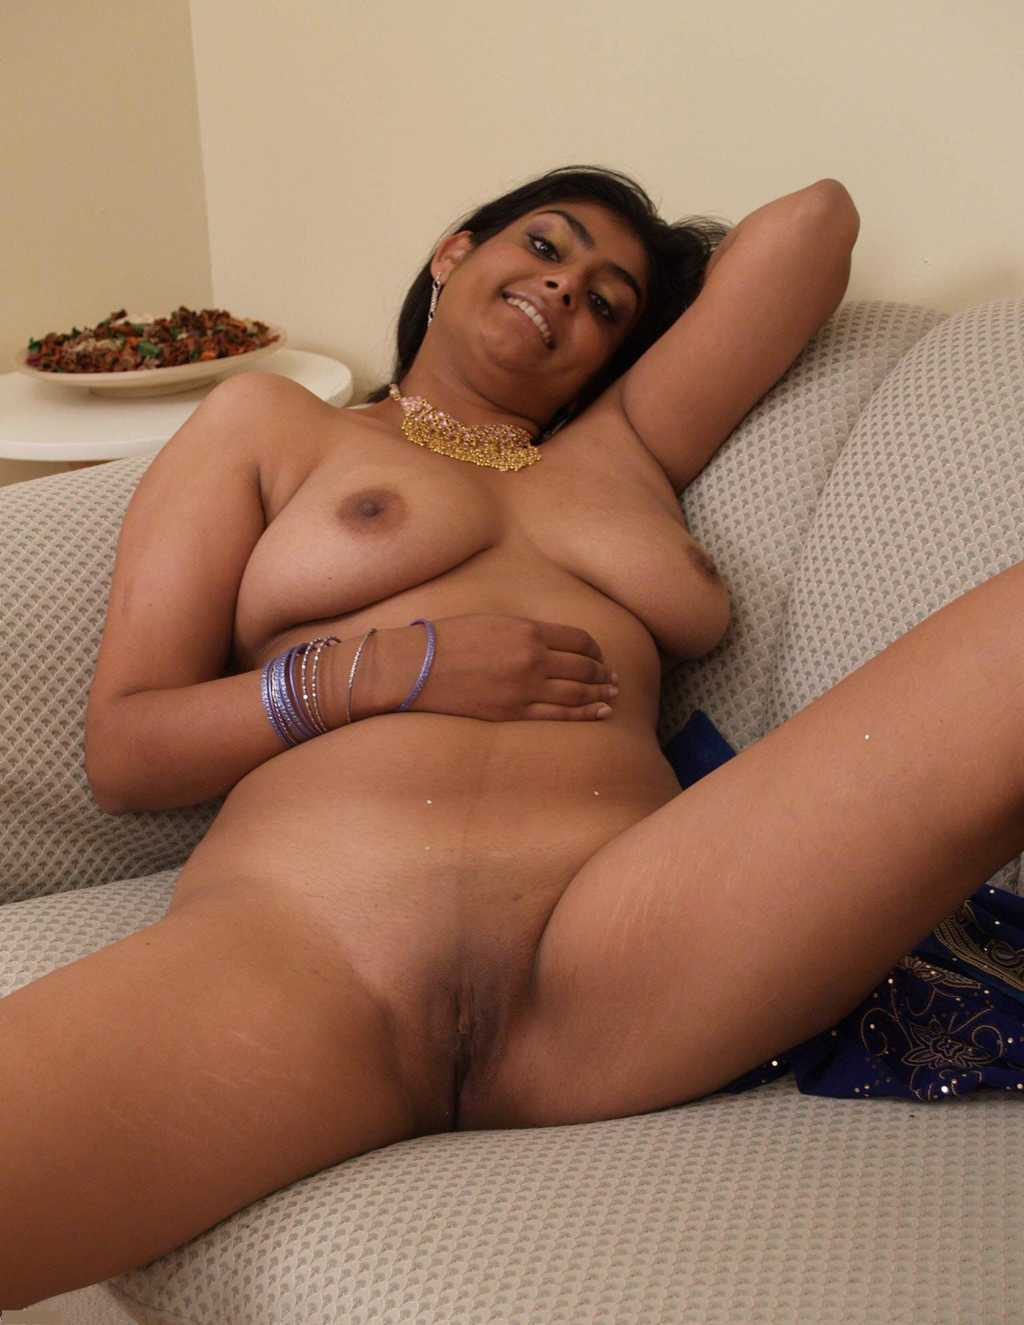 banded queen nude fuking scene